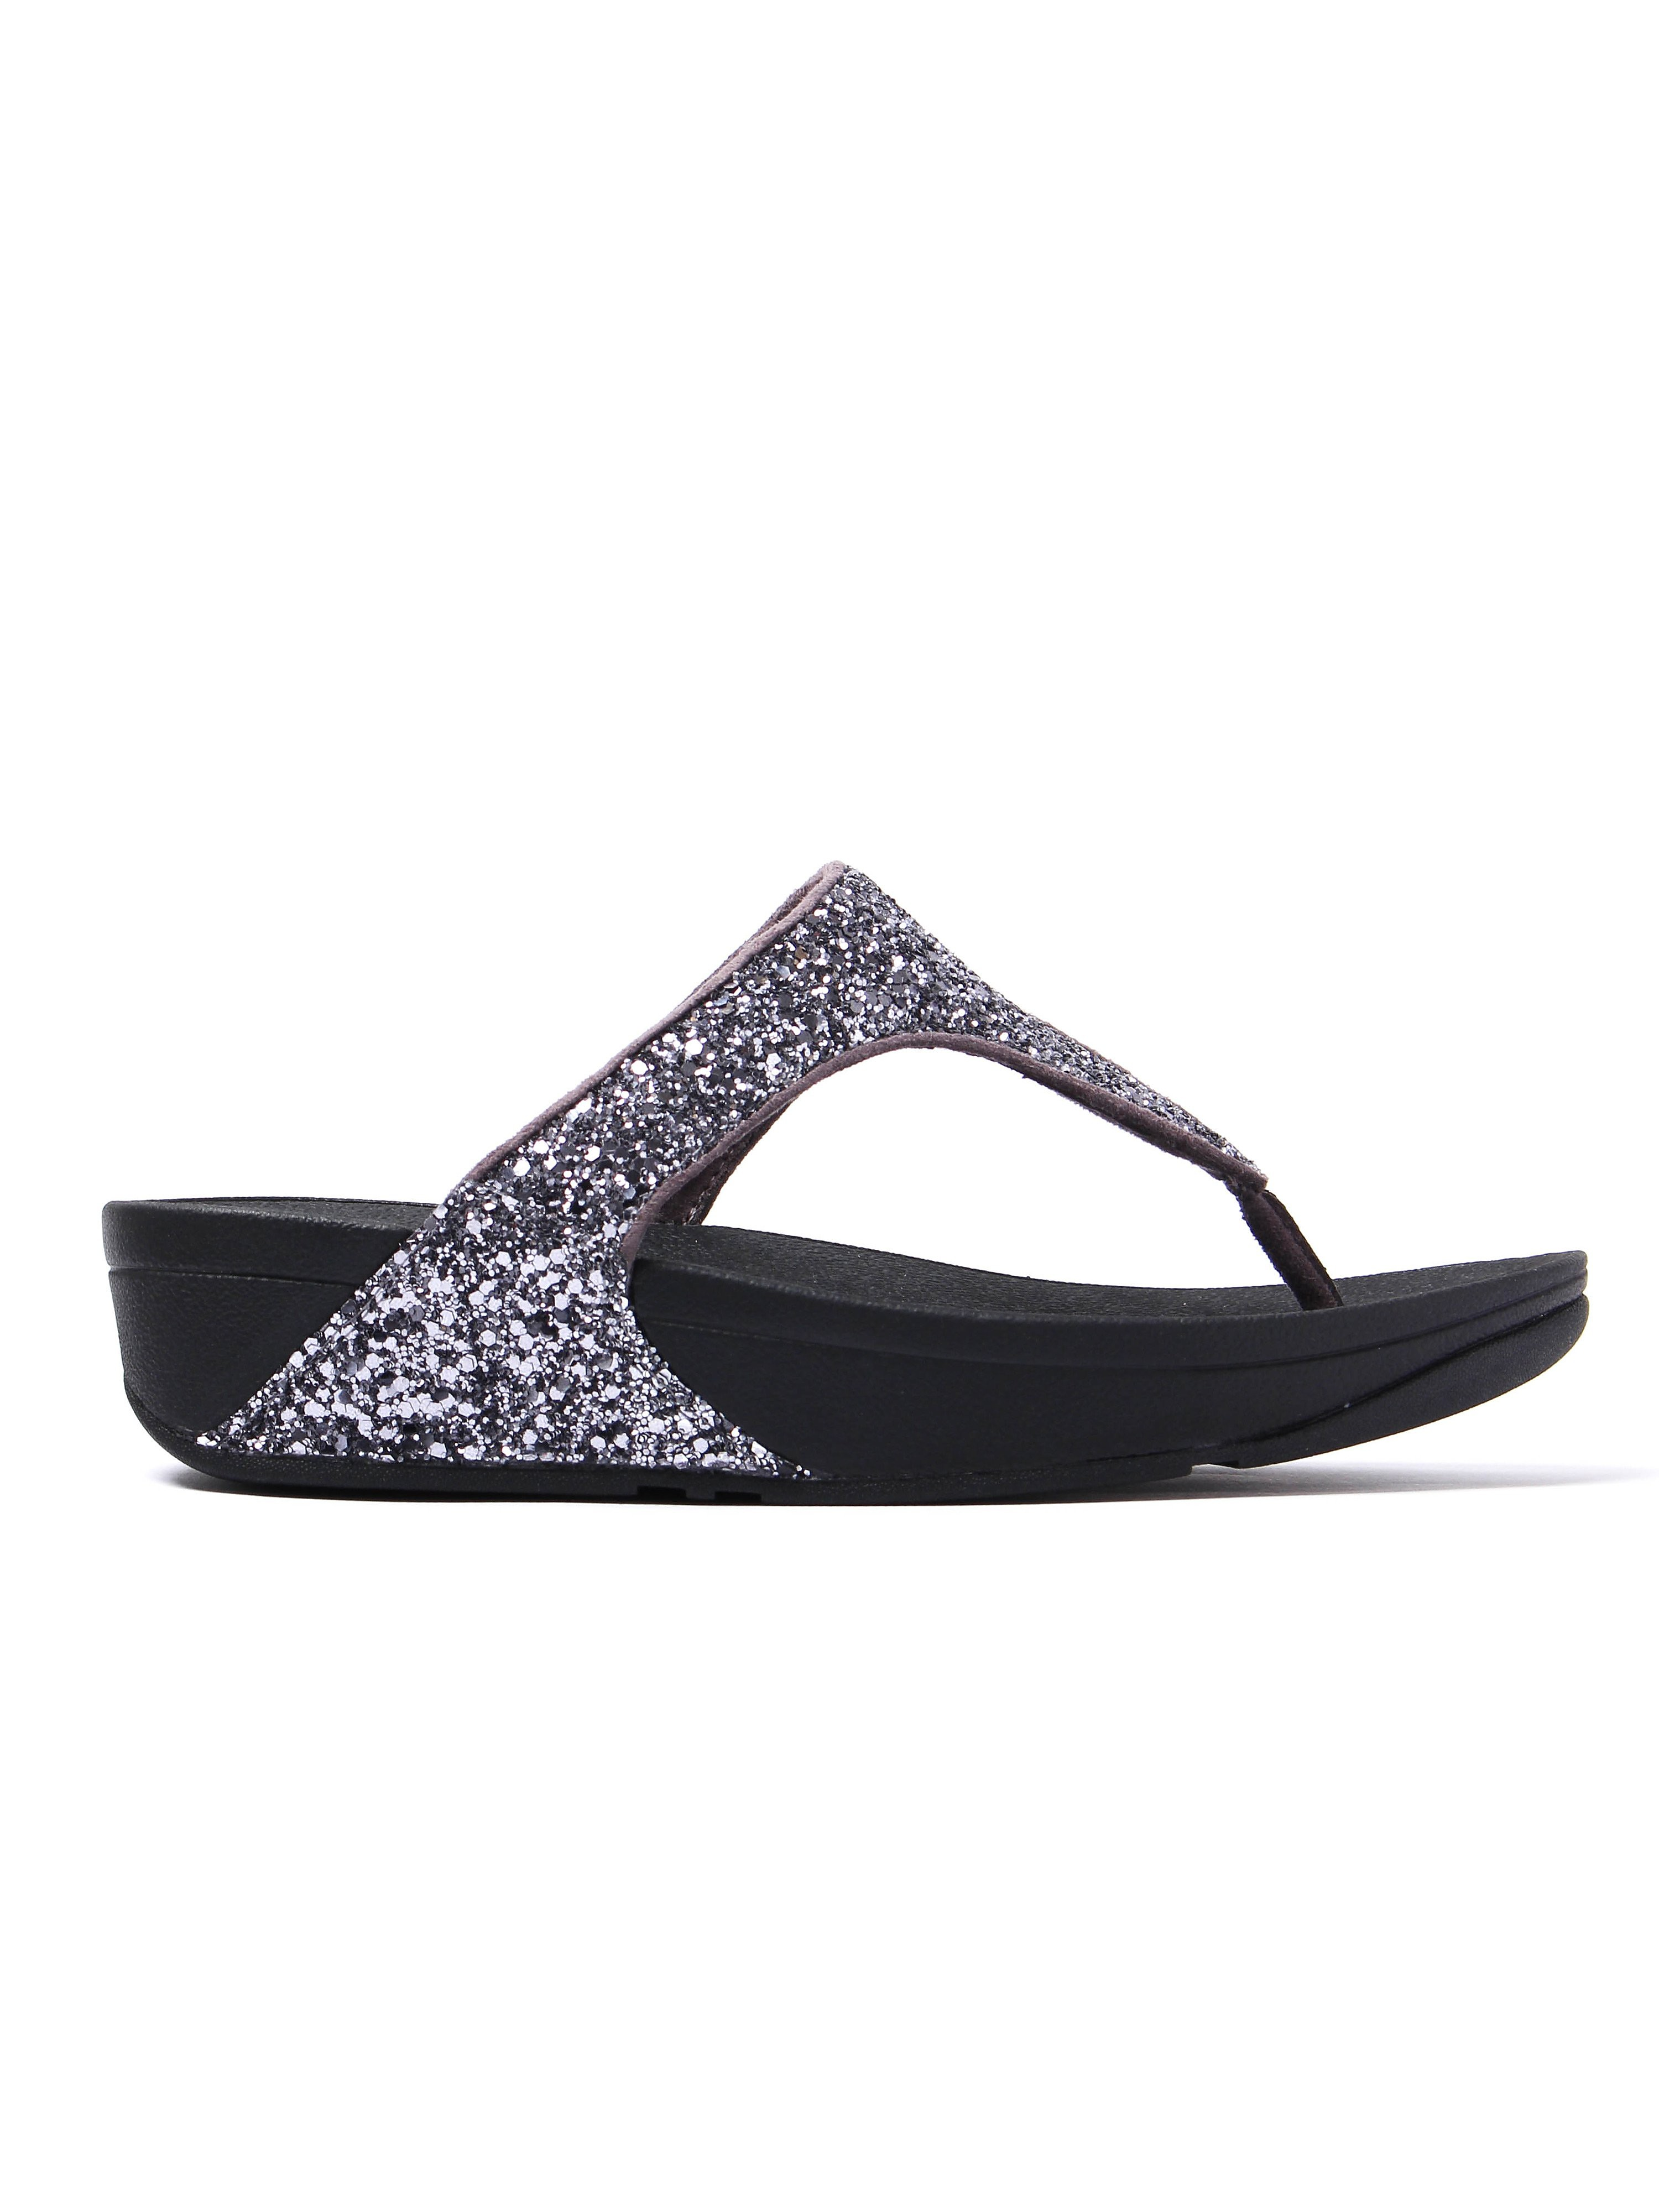 FitFlop Womens Glitterball™ Toe-Post Sandals - Pewter